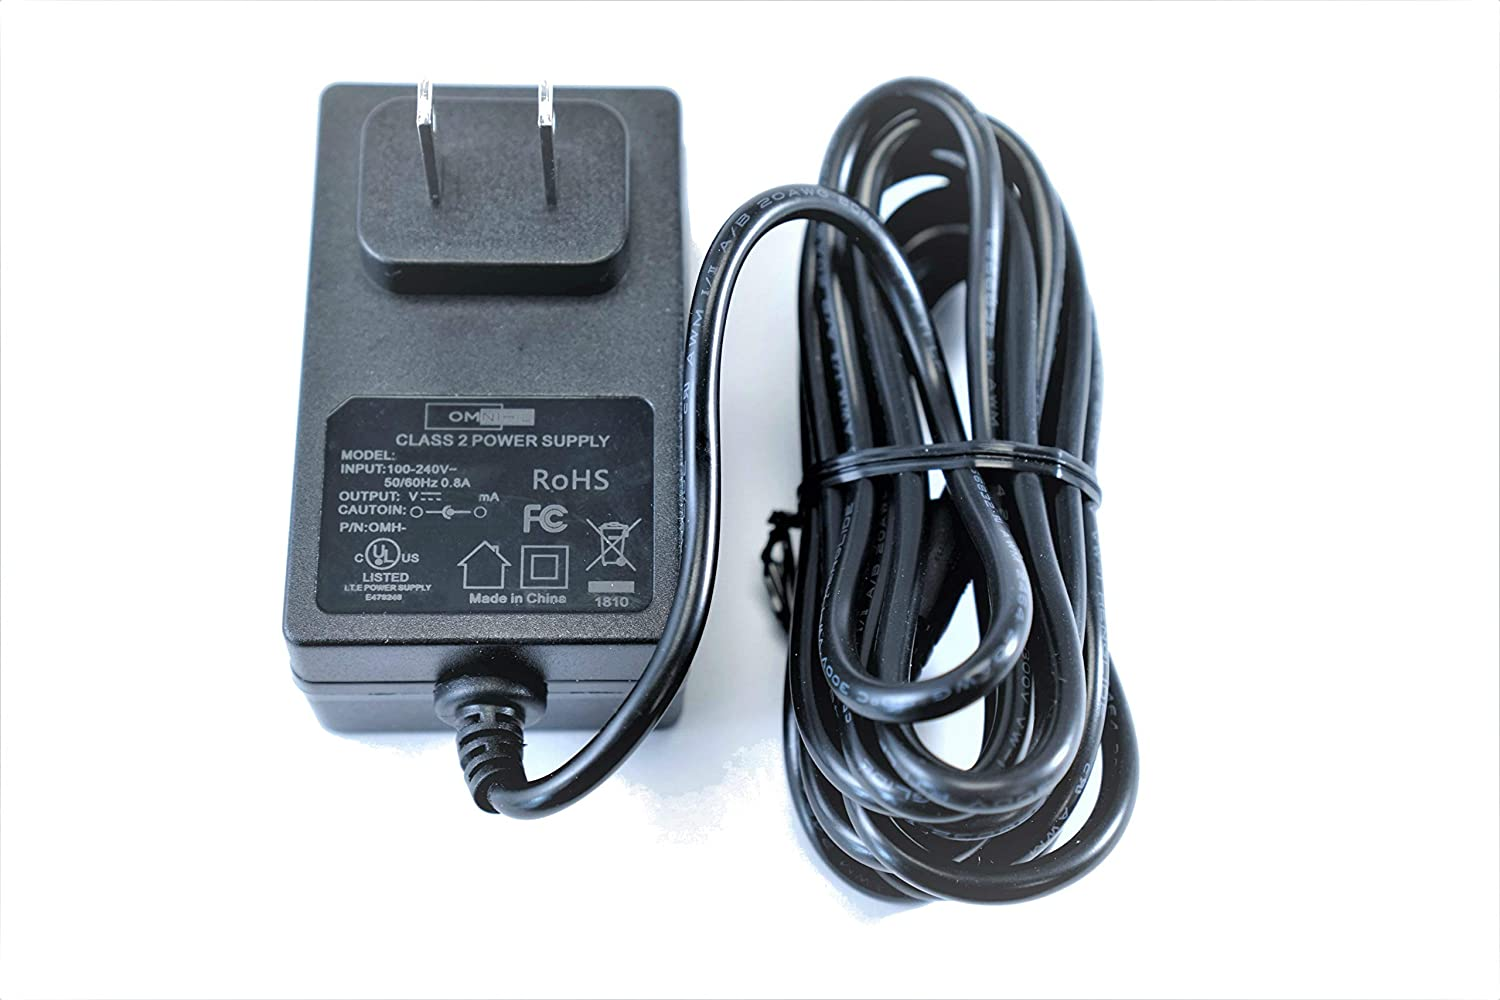 [UL Listed] OMNIHIL 8 Feet Long AC/DC Adapter 15V 1A 1000mA 5.5x3.0 pin (D Plug) OMH-120-1510U Power Supply World Wide Voltage 100-240V